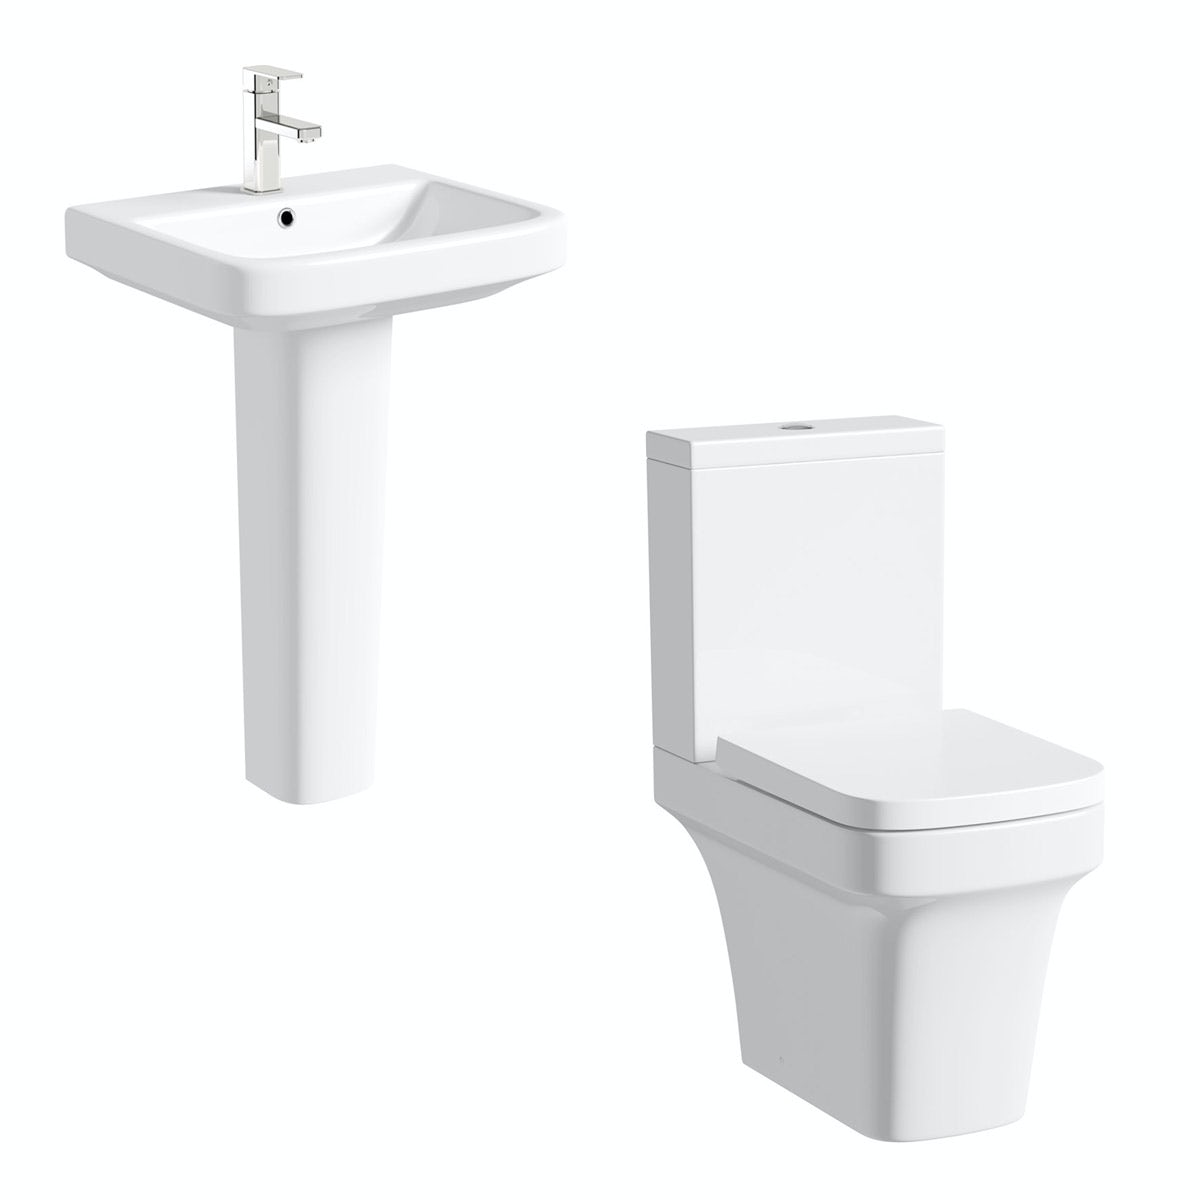 Mode Carter cloakroom suite with full pedestal basin 555mm